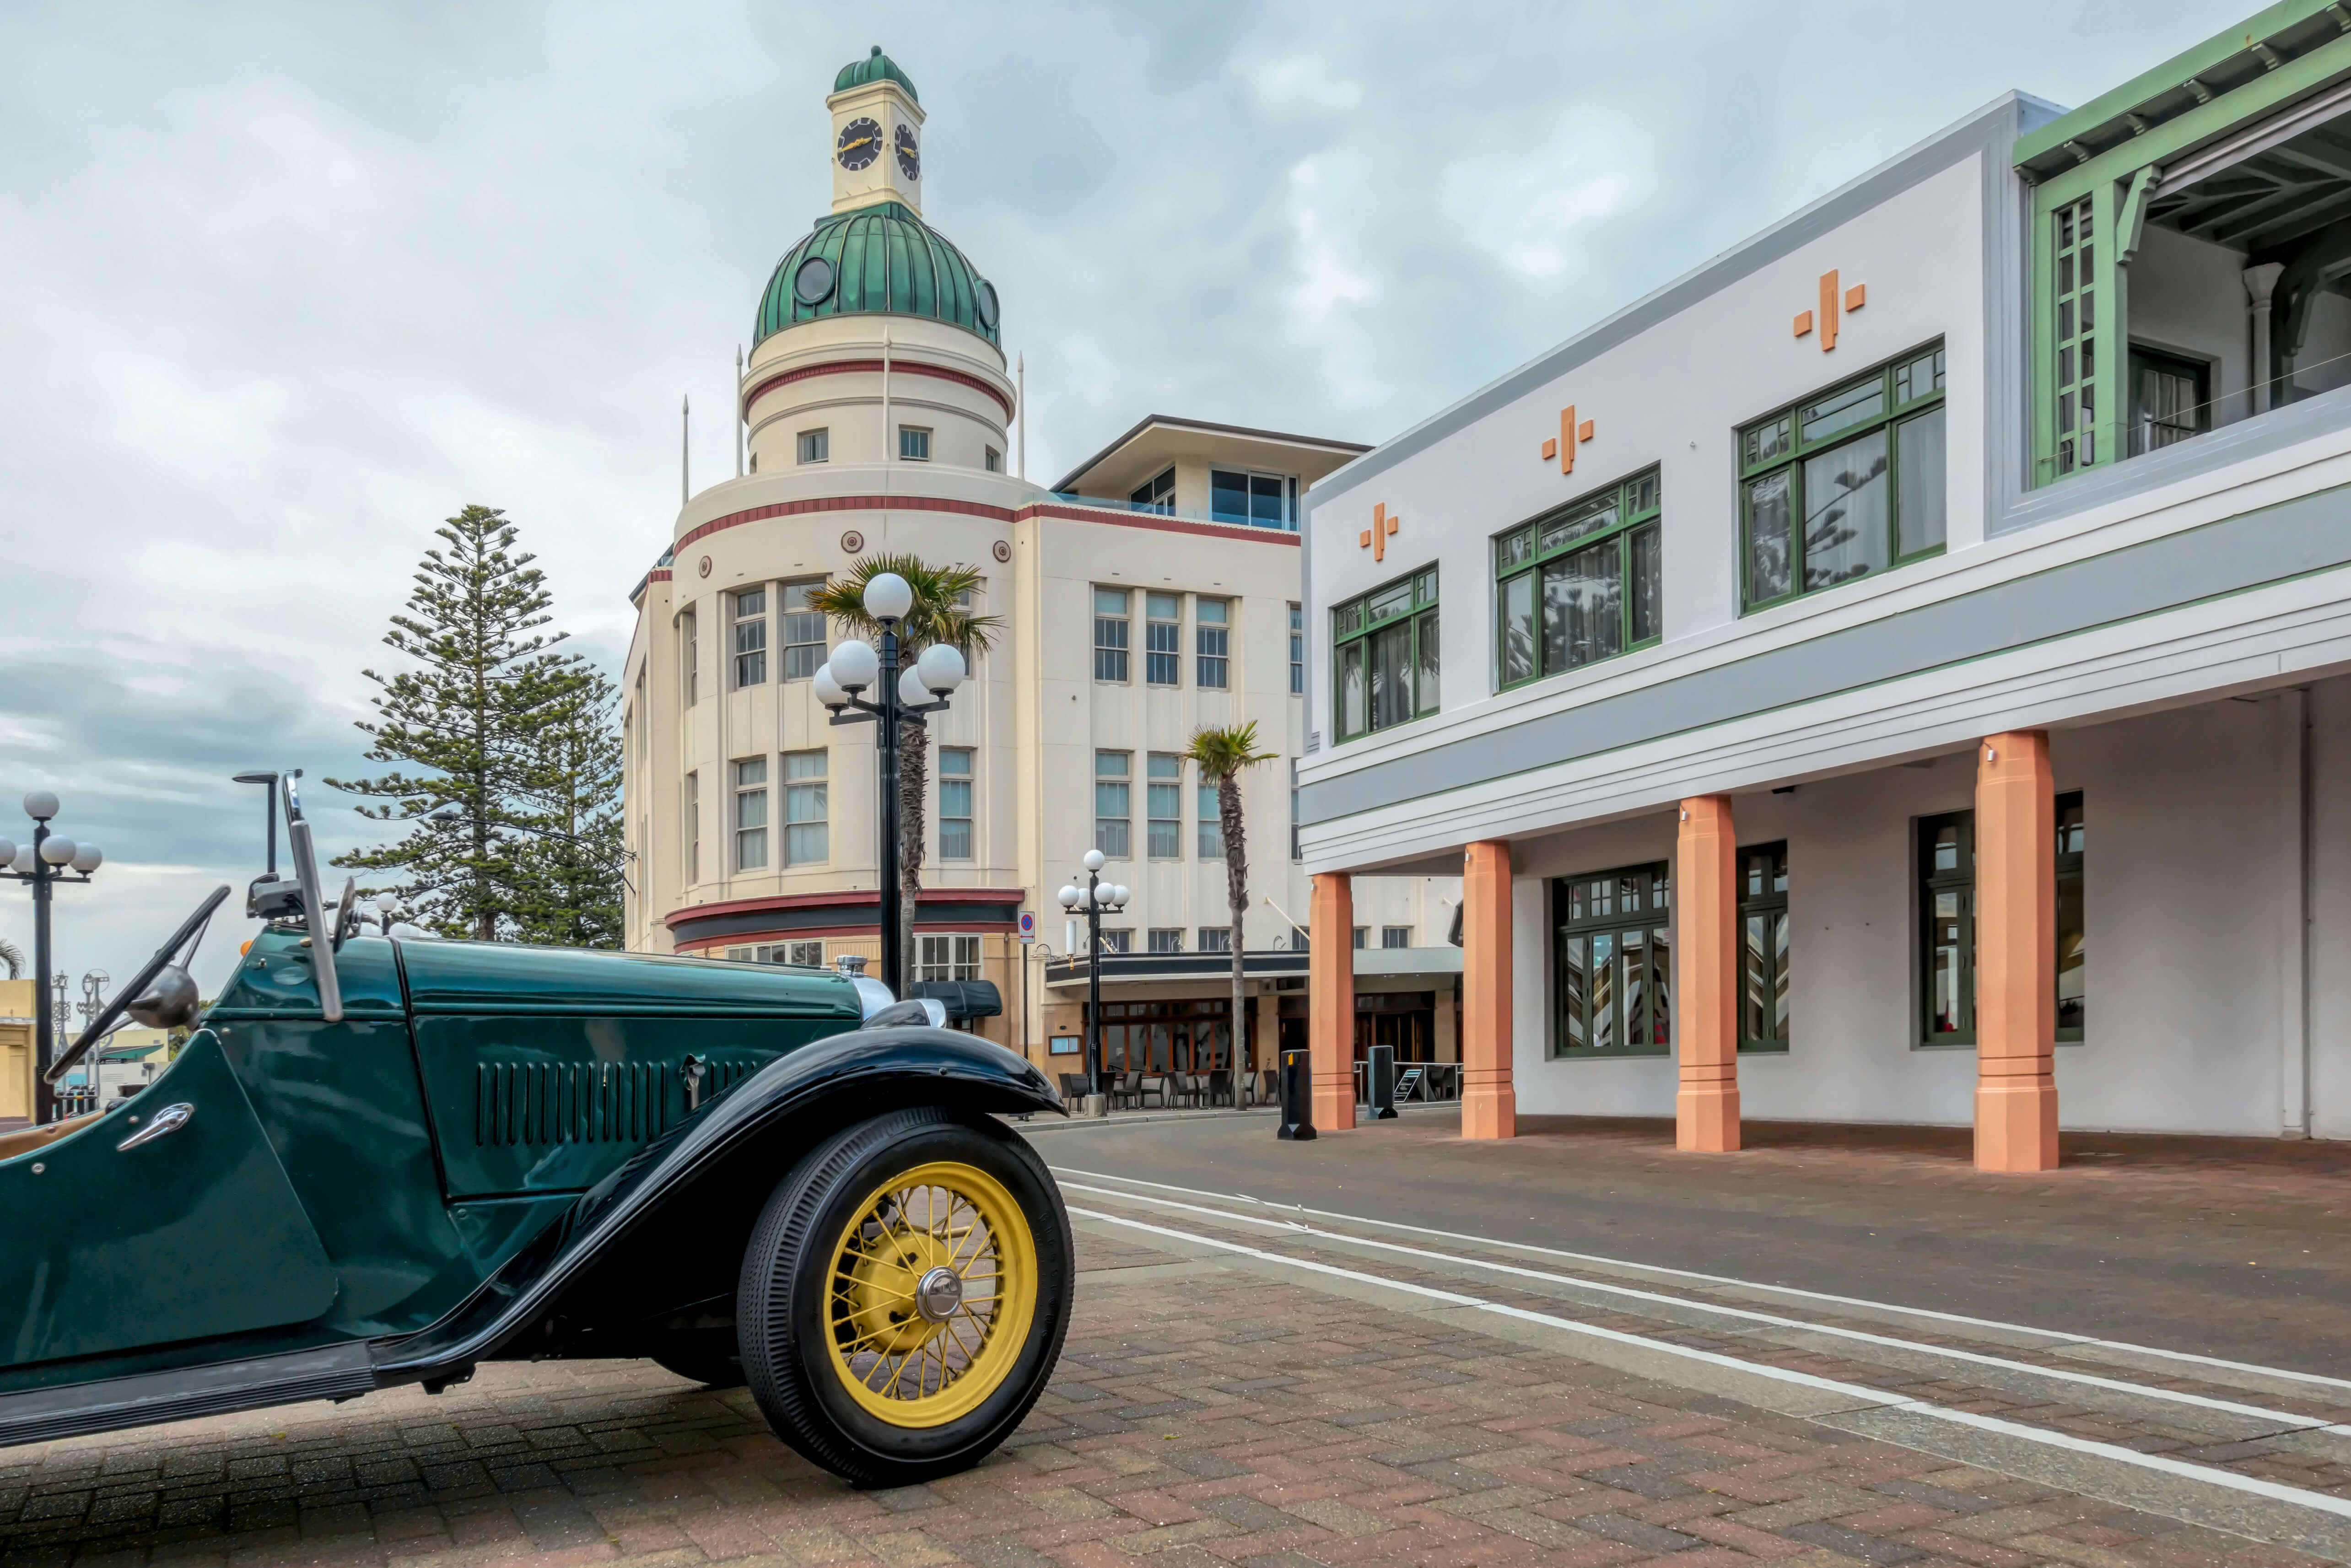 Napier's Iconic Symbols - The Dome and a Vintage Car